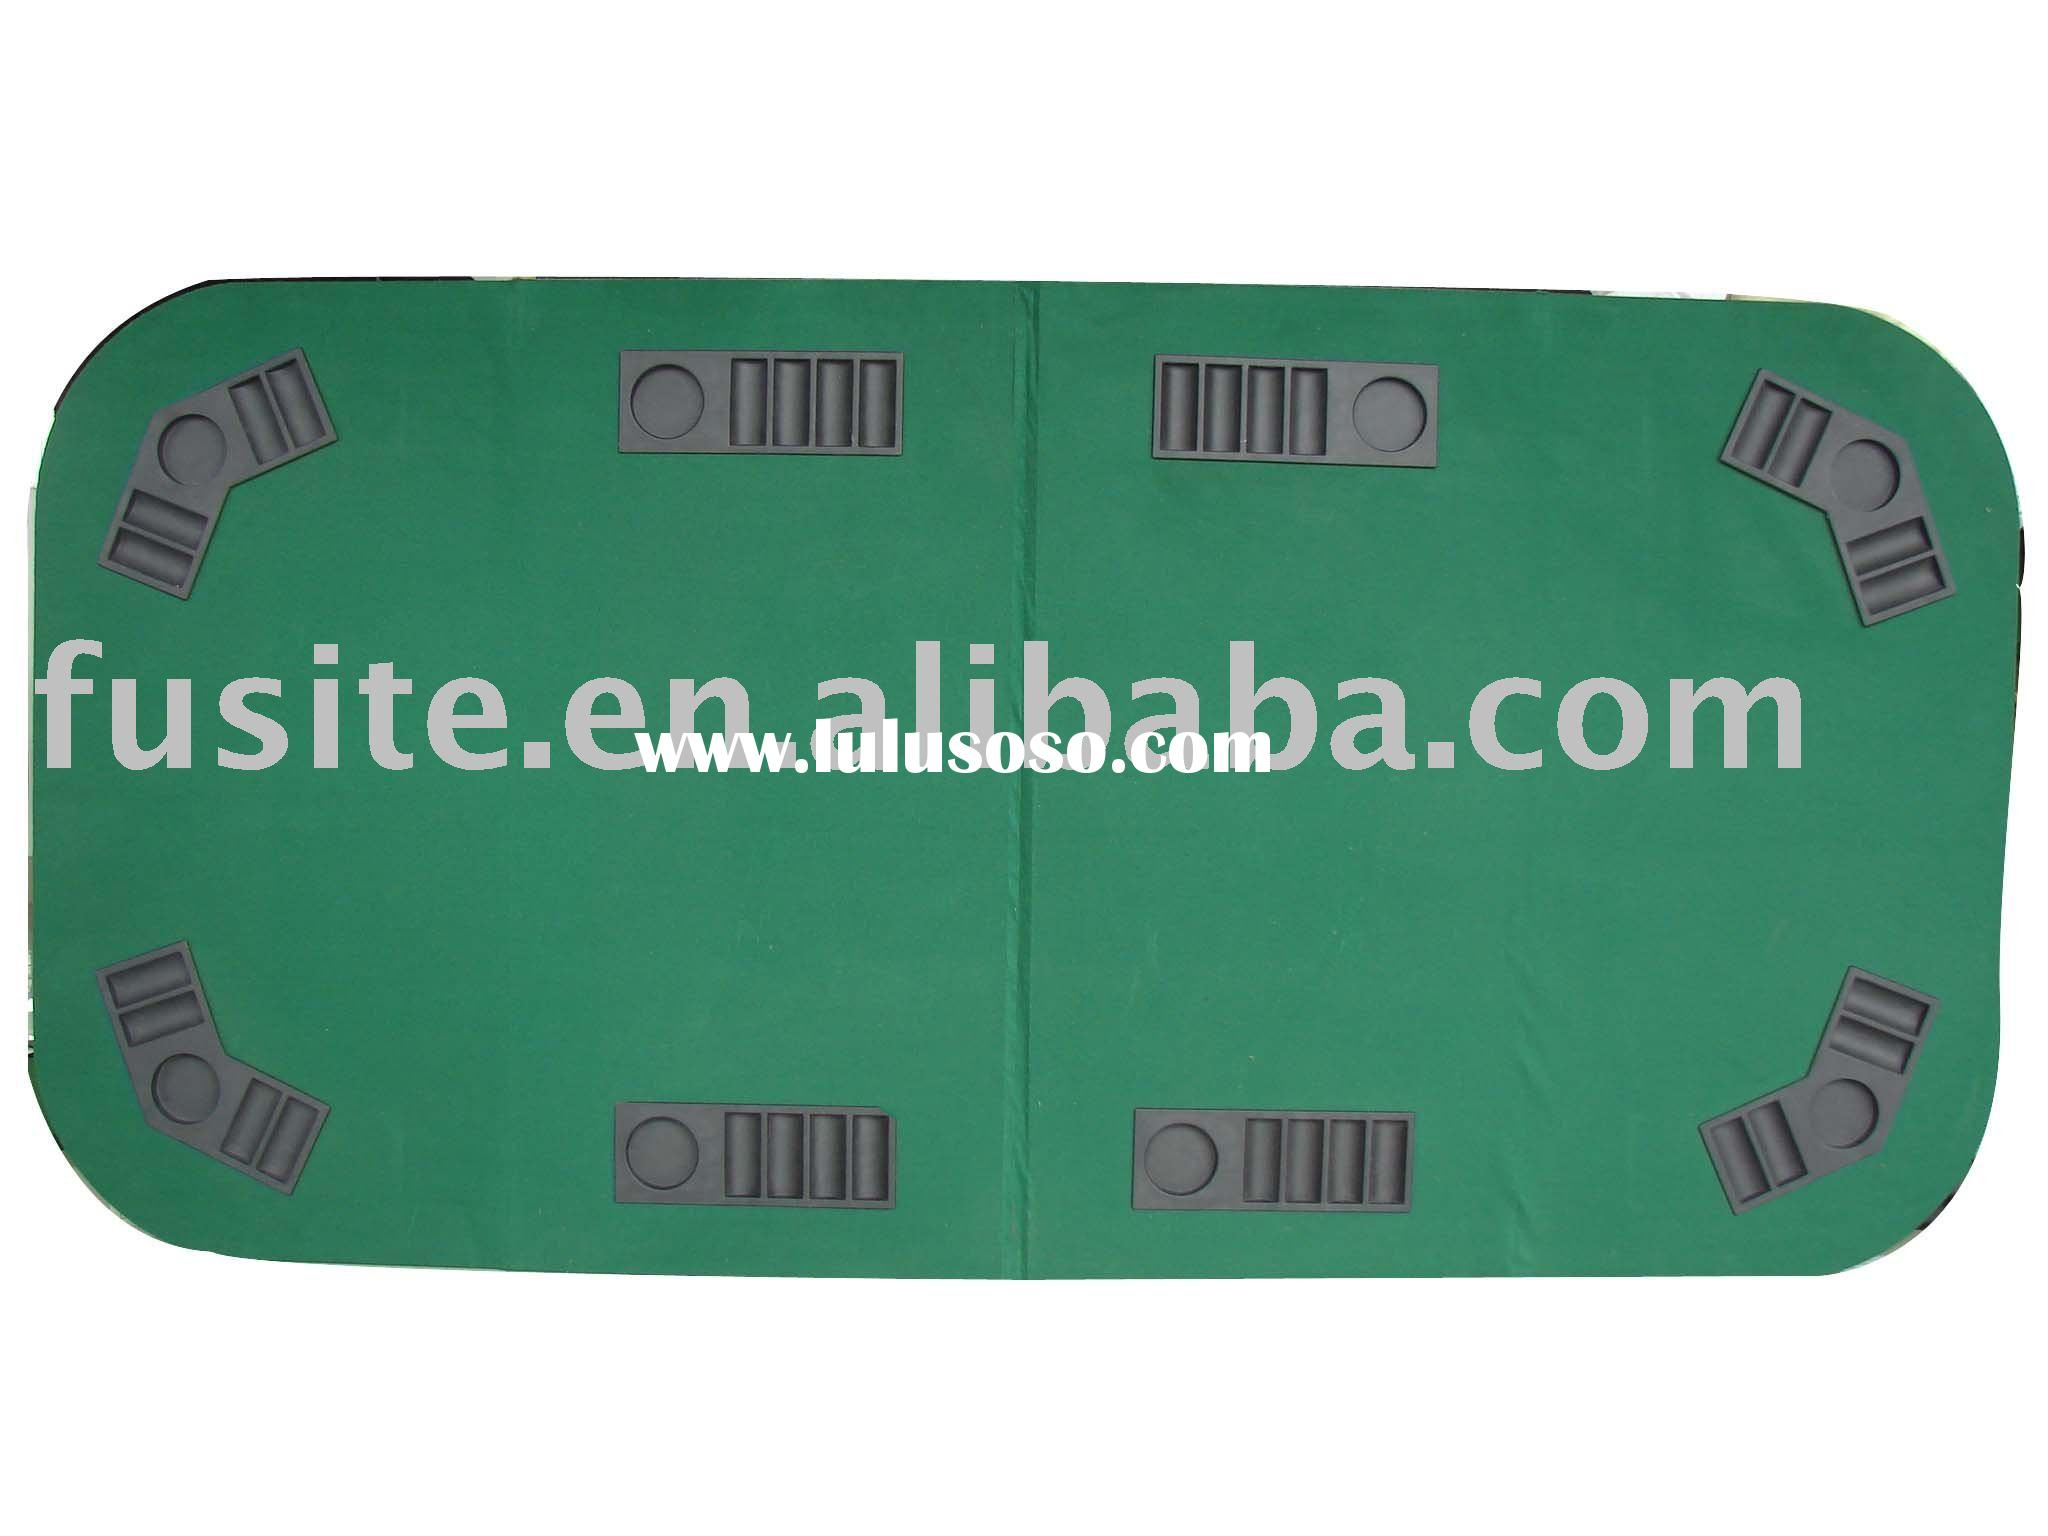 Foldable Casino Texas Holdem Poker Table Top